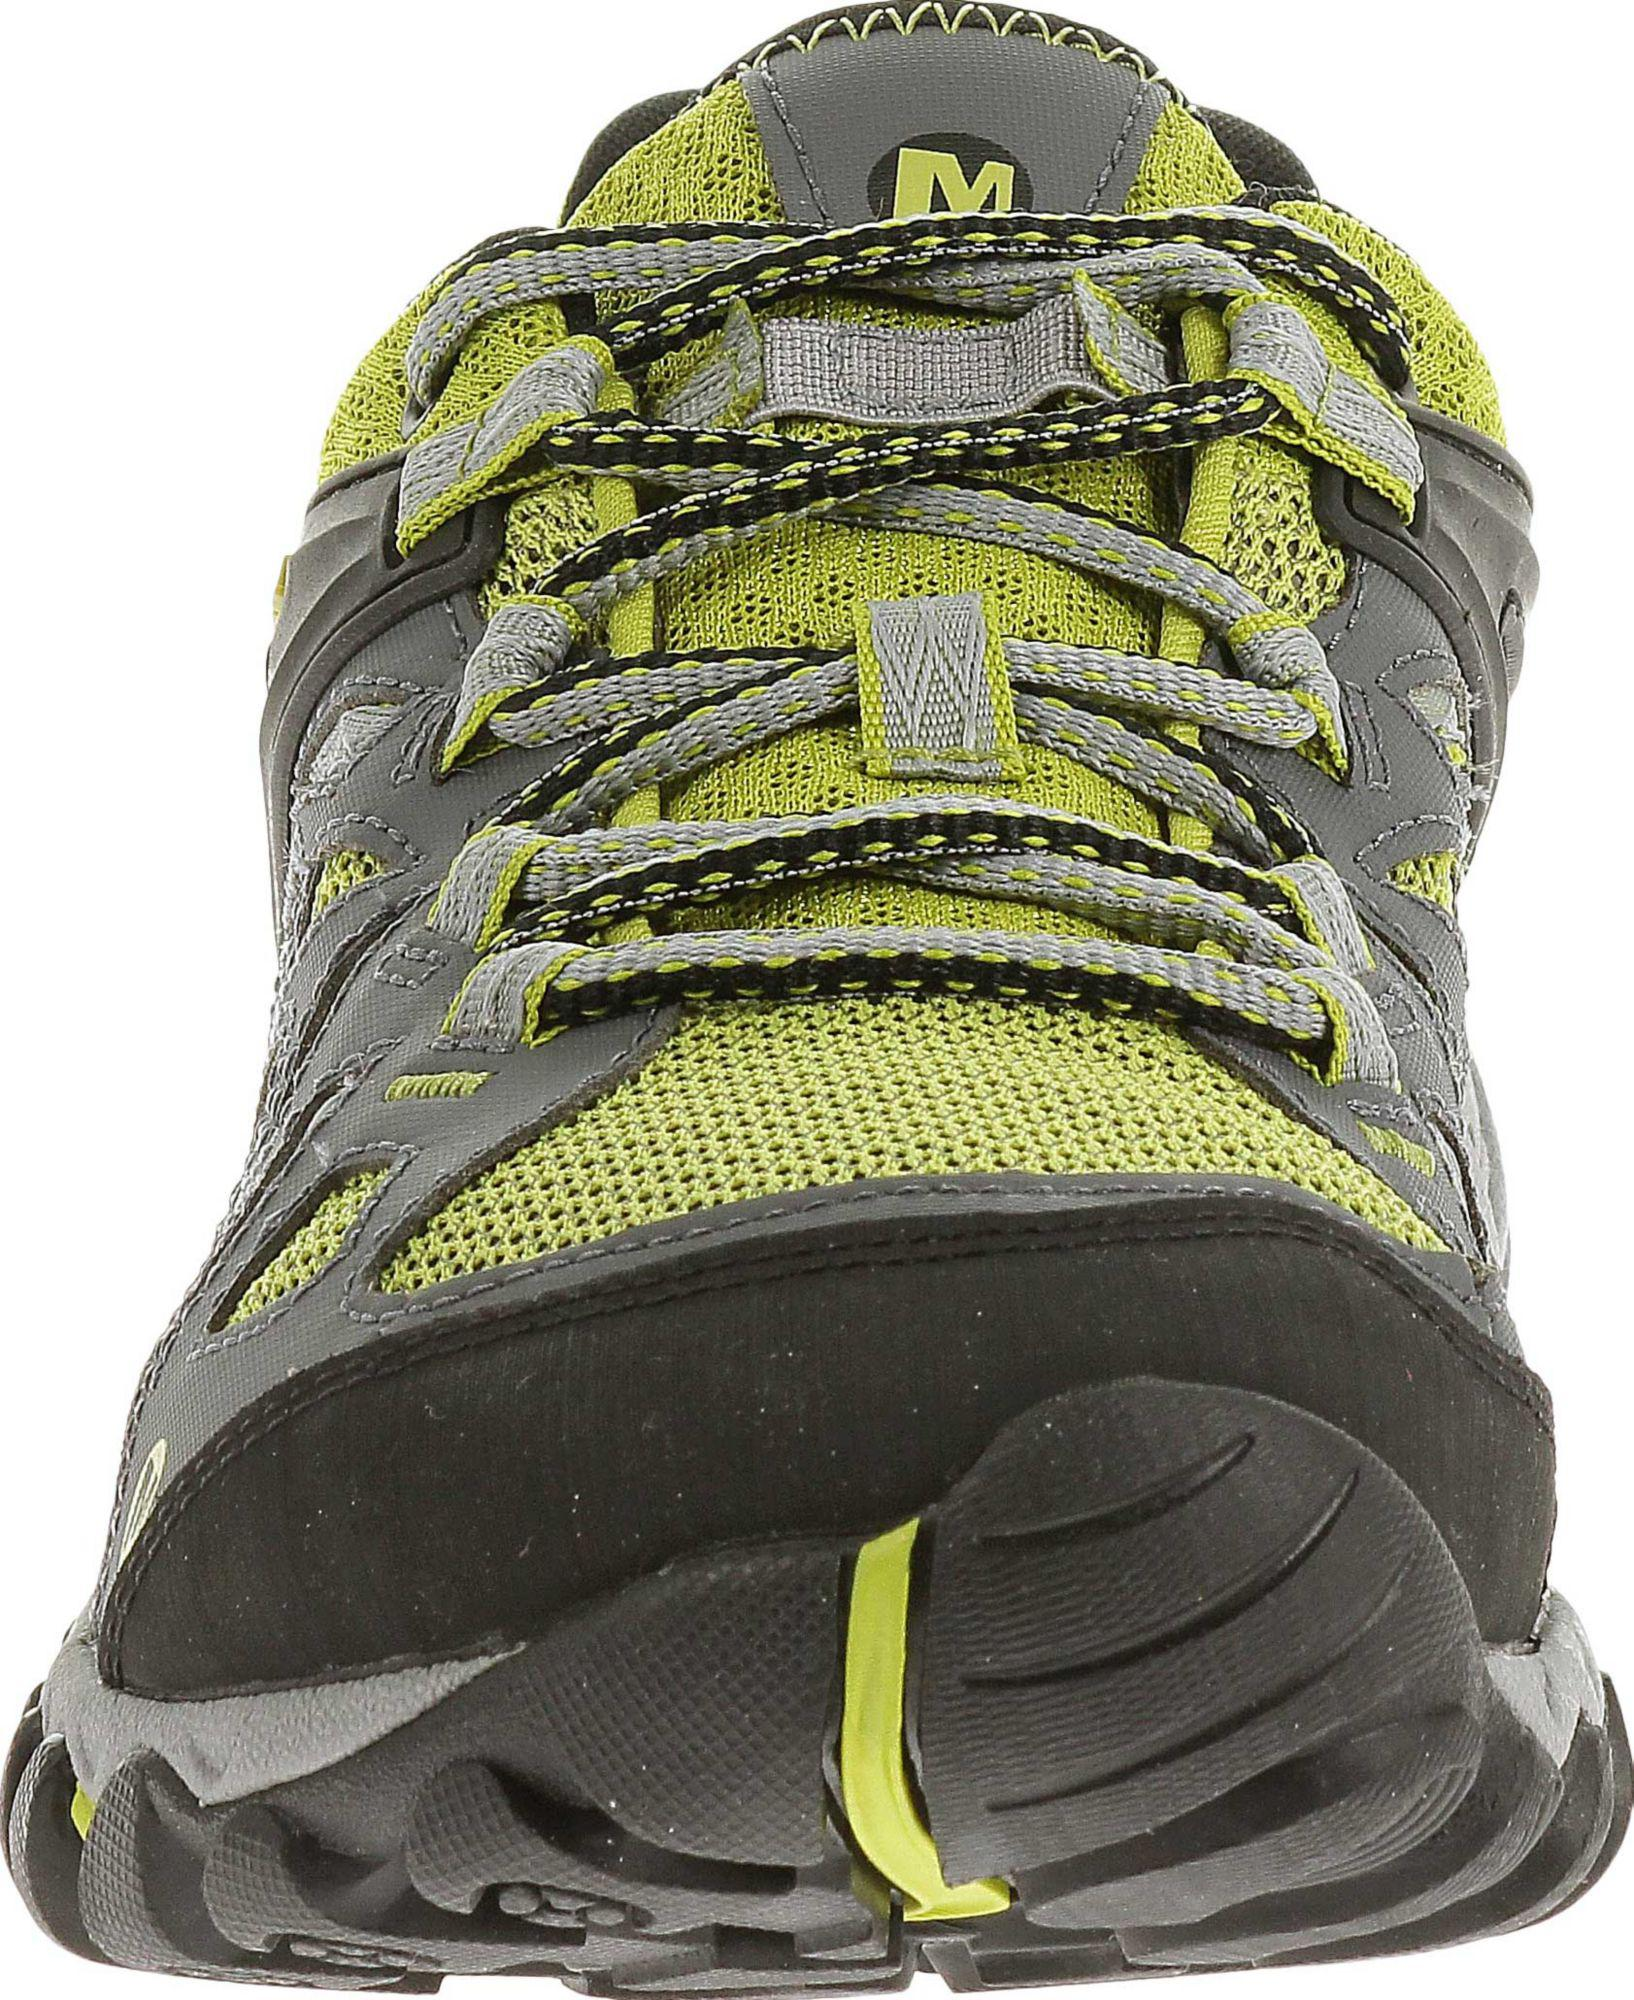 d008042c0981 Lyst - Merrell All Out Blaze Aero Sport Hiking Shoes in Green for Men